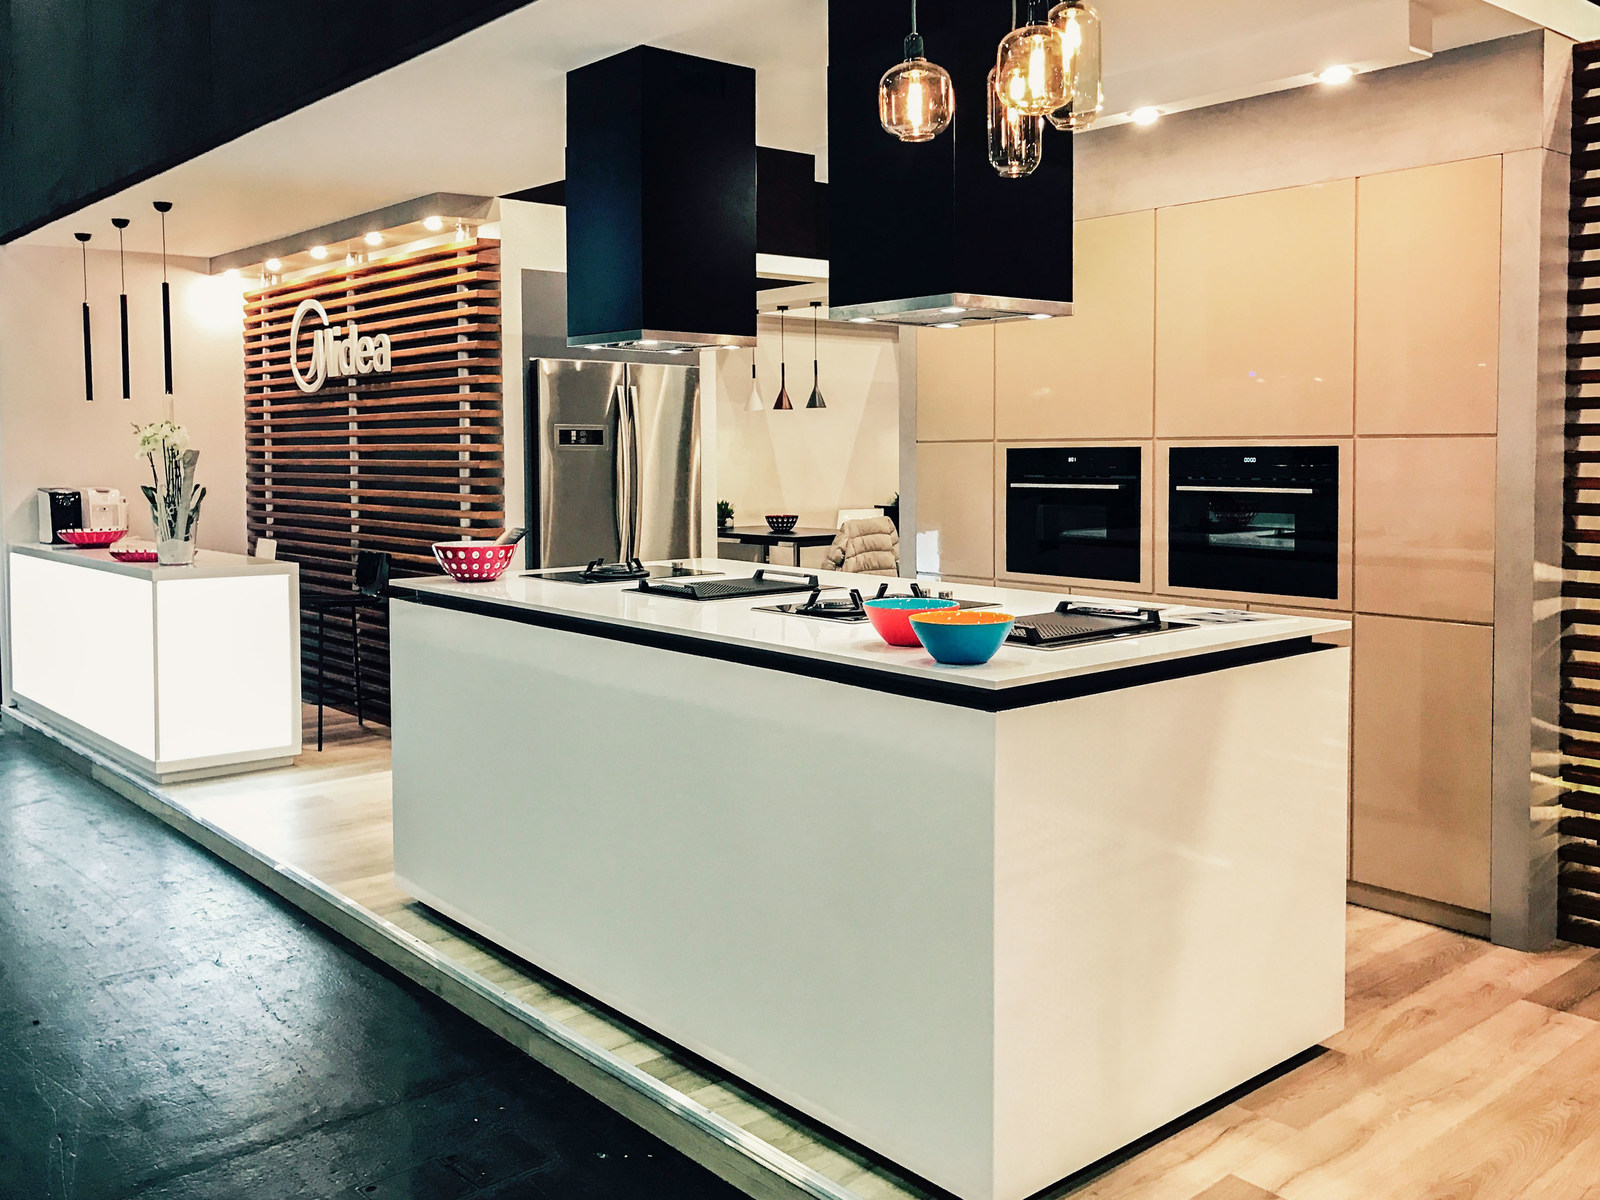 Uncategorized Trade Kitchen Appliances mideas exhibition at imm cologne 2017 injects personality into 2017